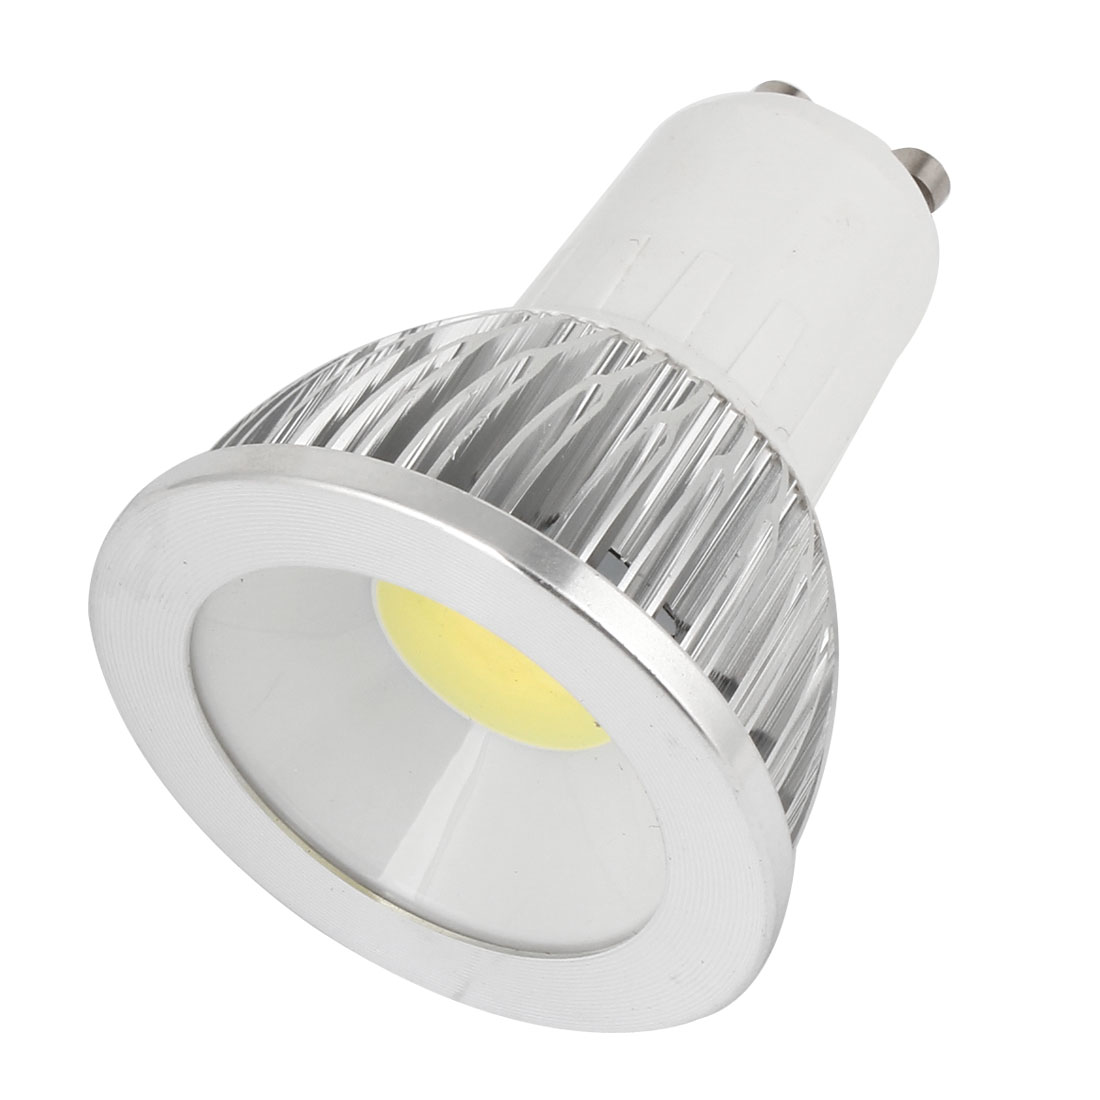 AC 85-265V 6W 360-390LM GU10 Non-dimmable Cool White Light COB LED Downlight Lamp